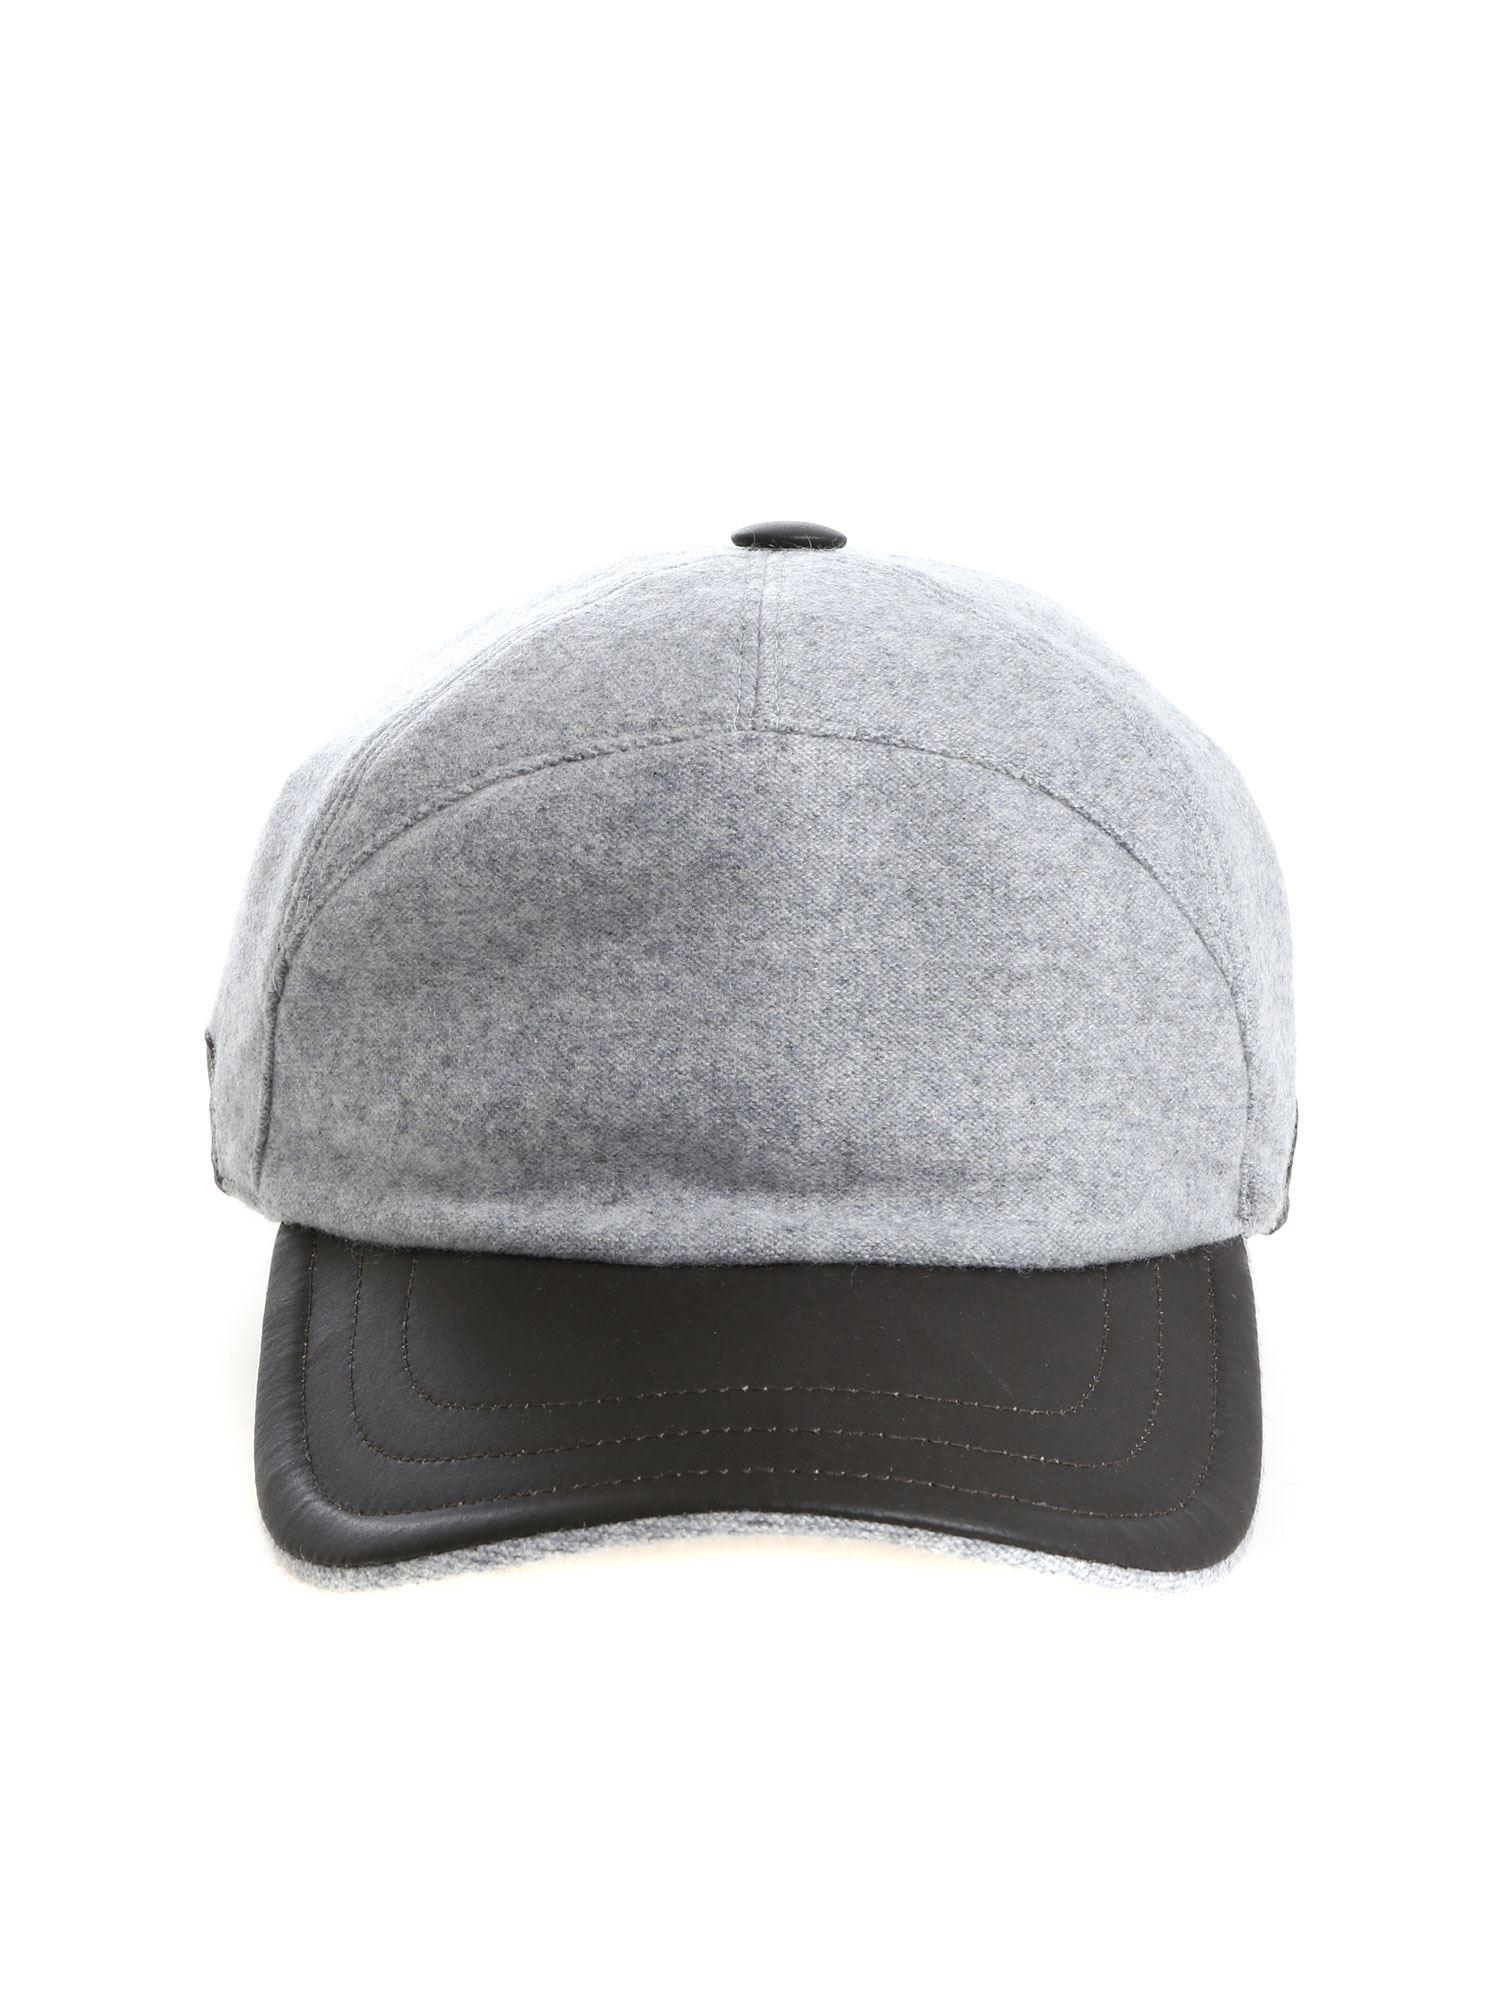 Lyst - Fedeli Grey Cap With Leather Details in Gray for Men 1e8e3d521c24